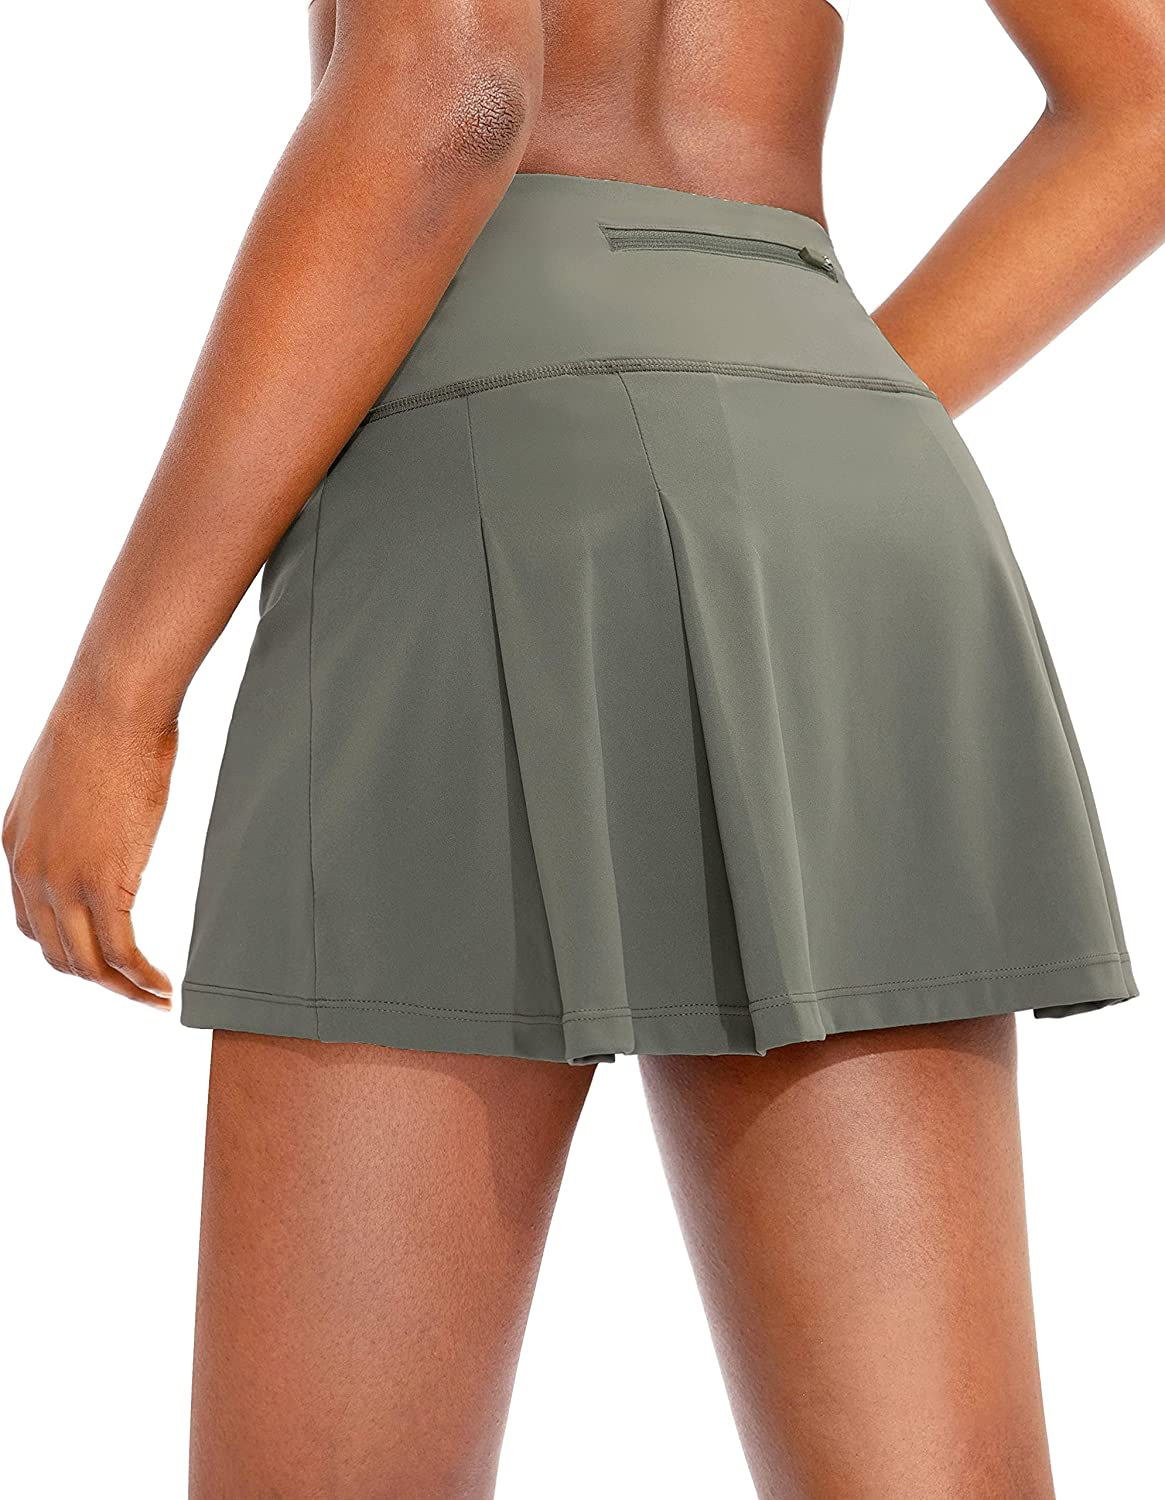 Soothfeel Pleated Tennis Skirt for Women Import Louisville-Jefferson County Mall Women's Hi Pockets with